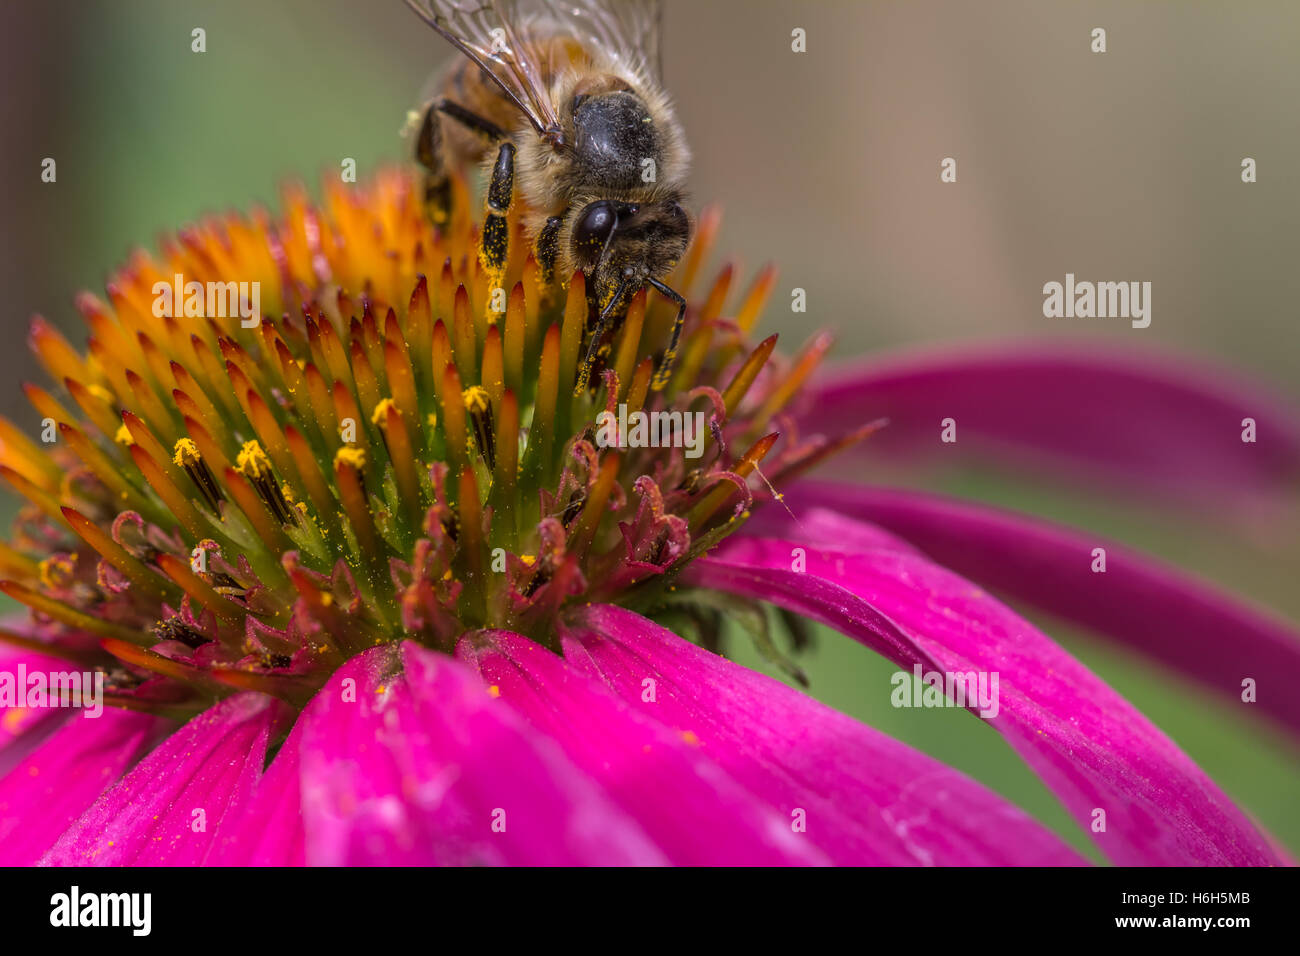 Bee on a Cone Flower - Stock Image